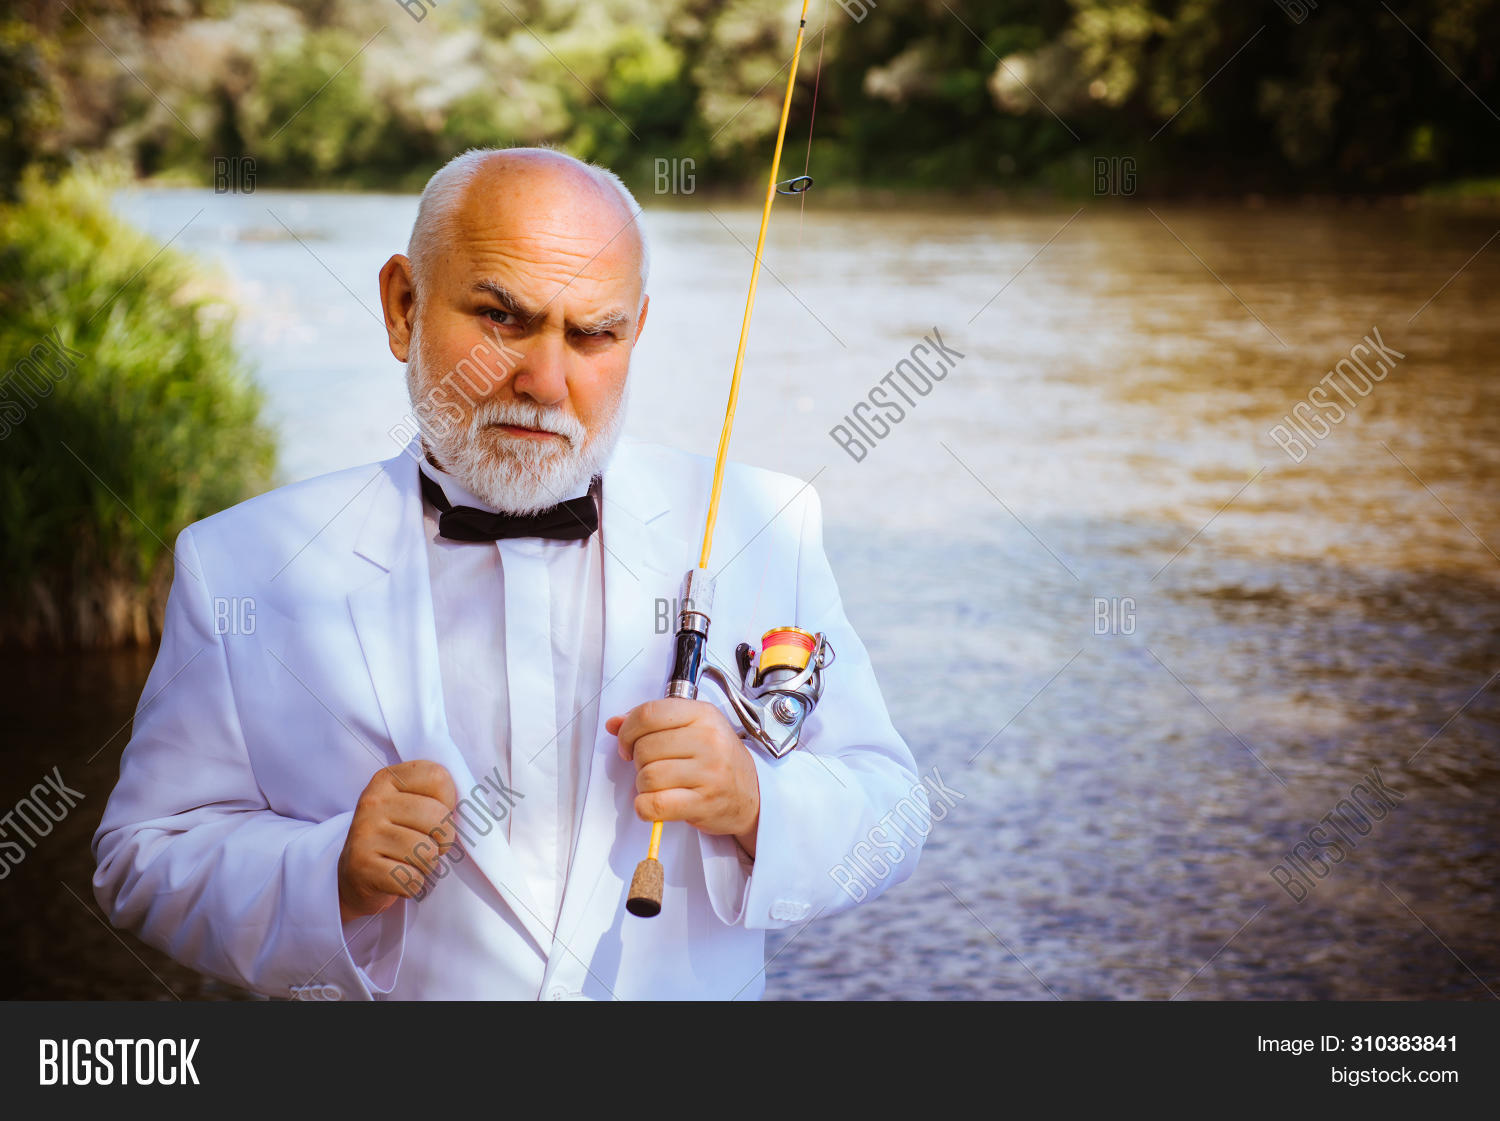 Fishing Became A Popular Recreational Activity. Fly Fishing. Fly Fisherman Using Fly Fishing Rod In